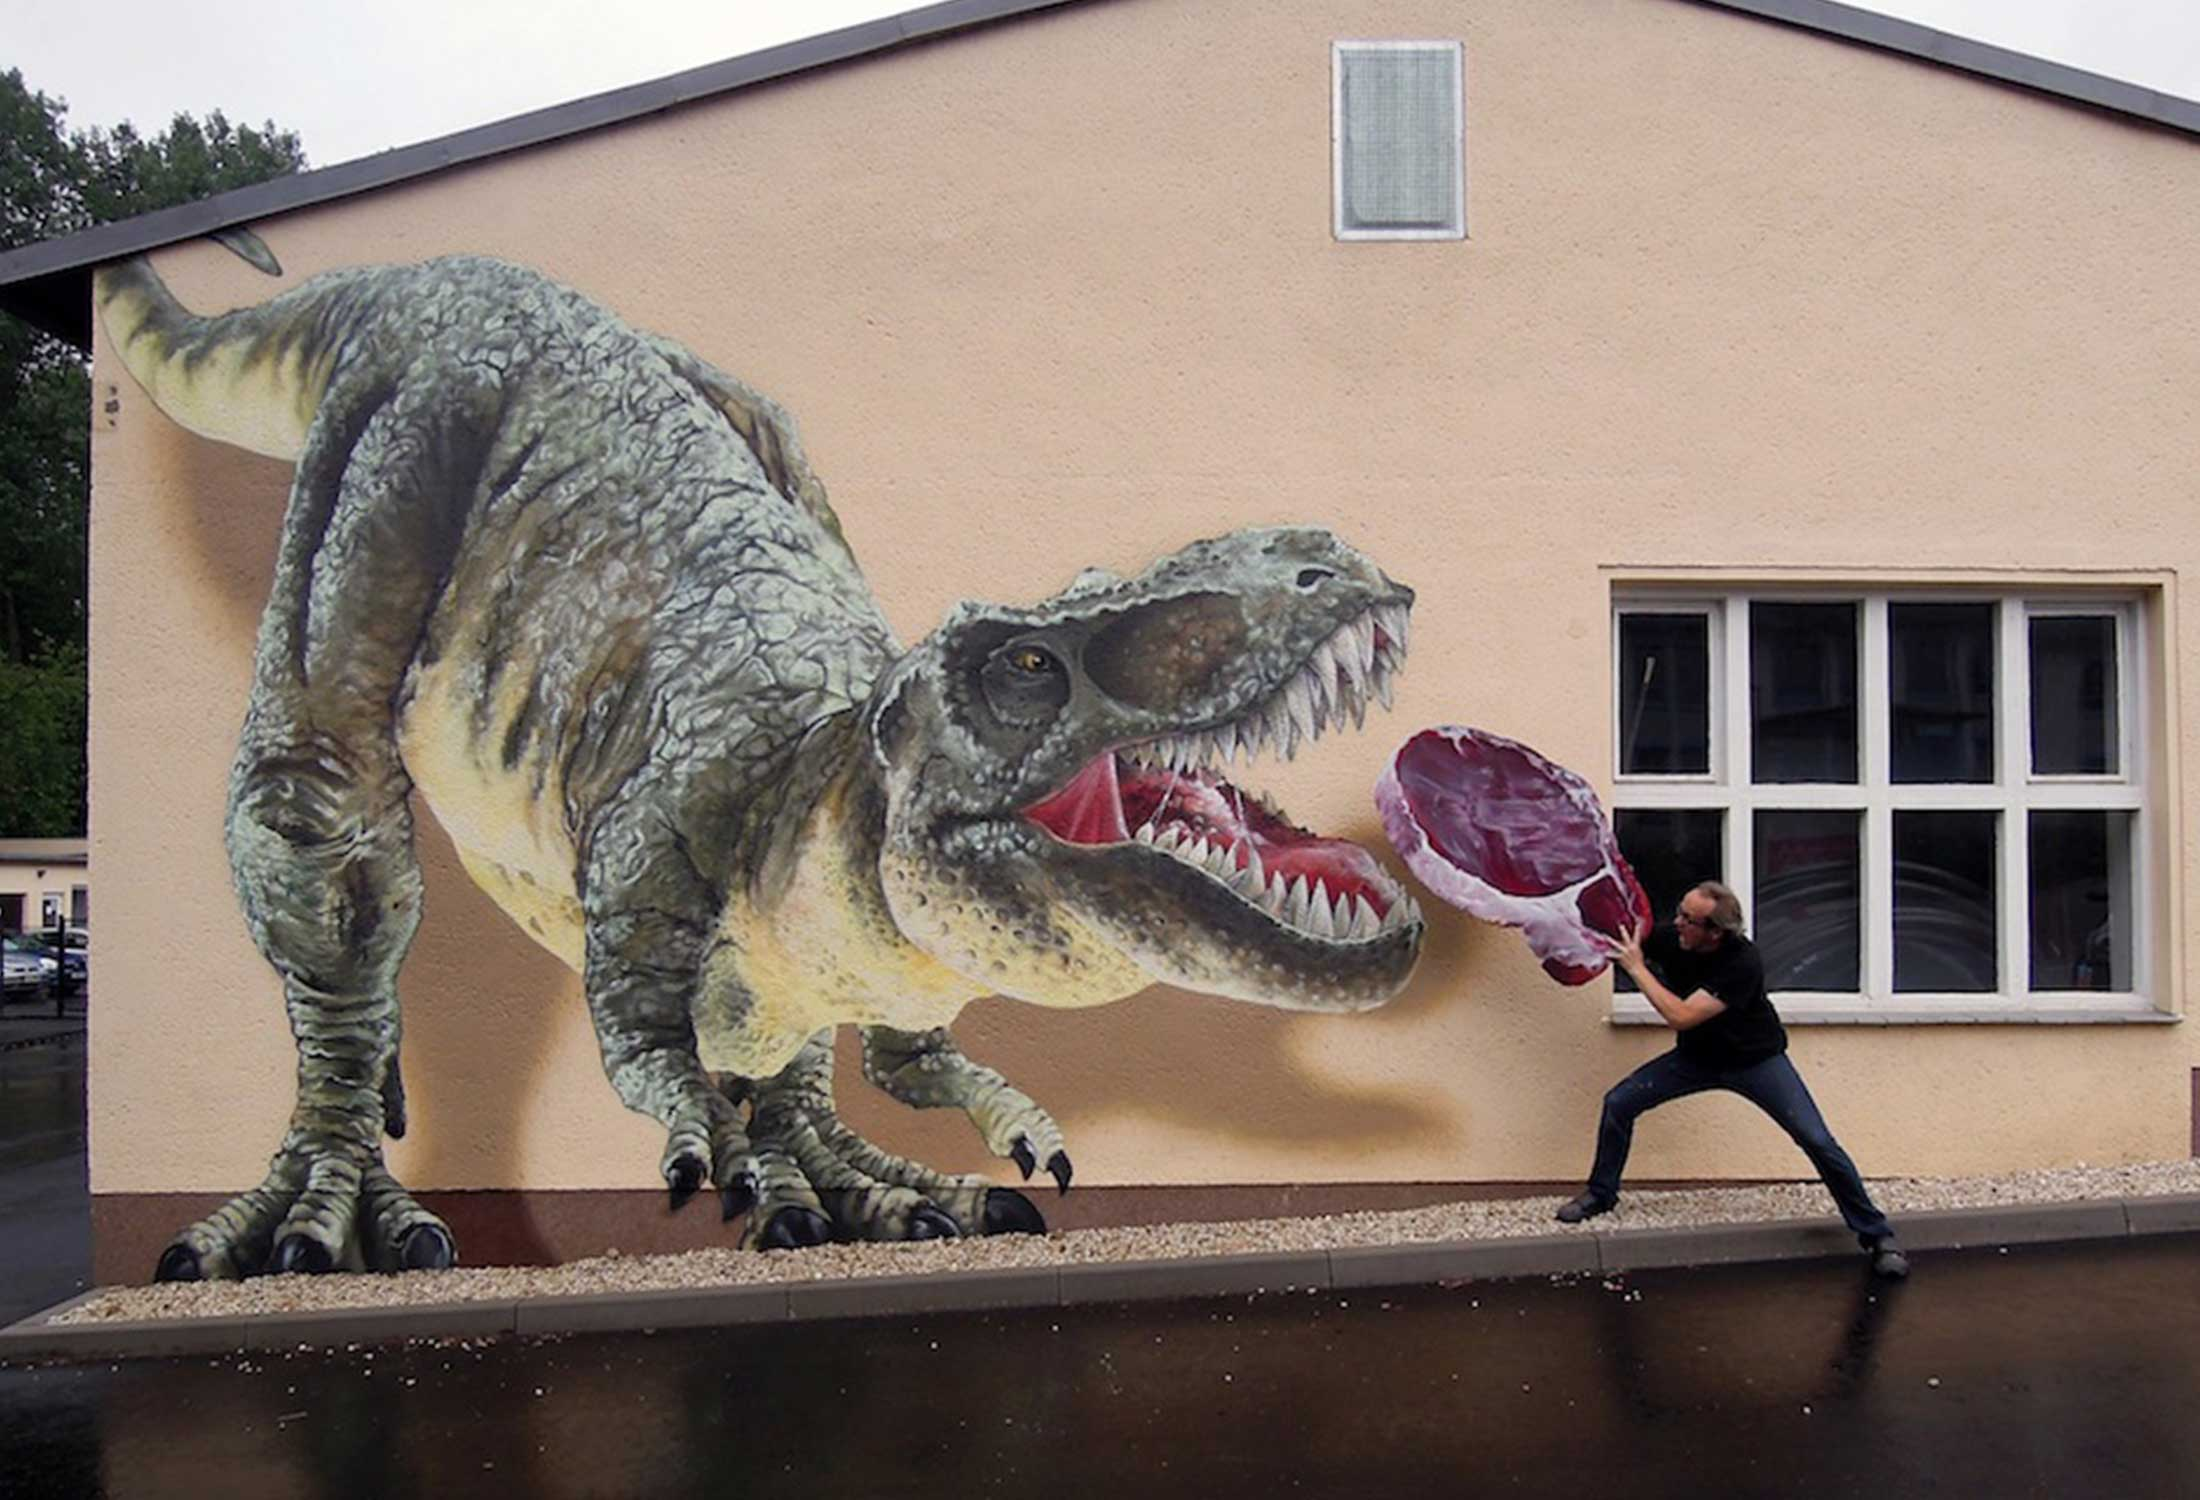 A memorable and magically-realistic mural by Tasso, TASSOsaurus Rex evokes feelings of awe and fear in viewers.